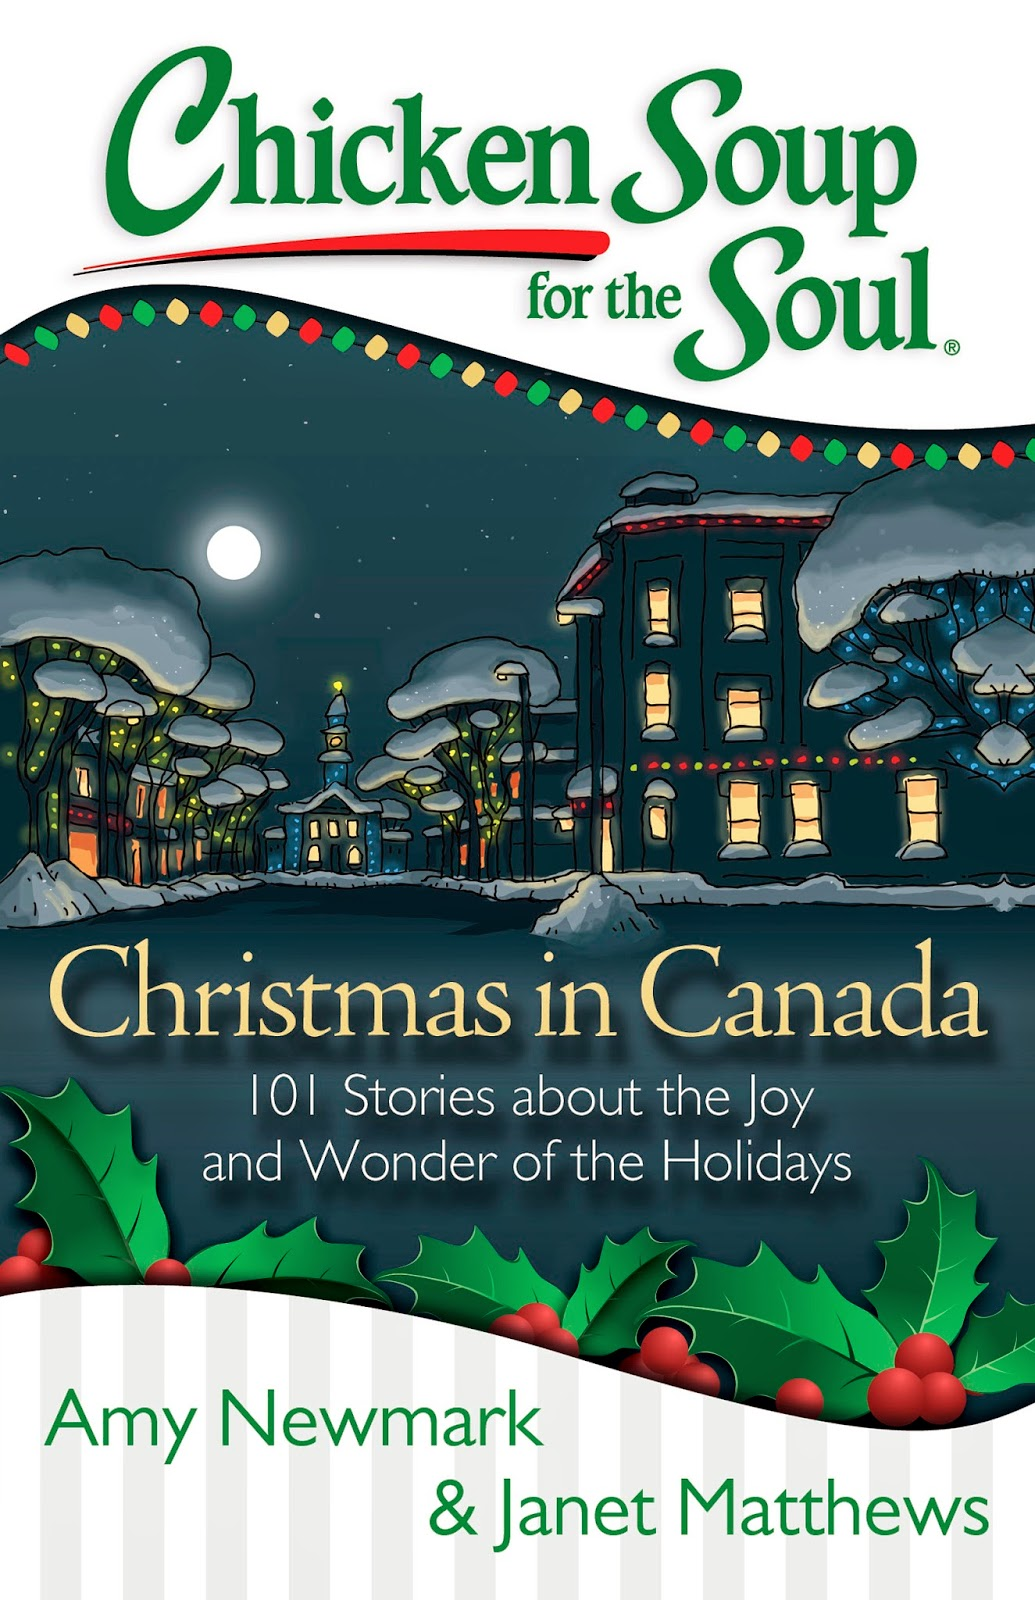 Enter to win 1 of 3 copies of Chicken Soup for the Soul: Christmas in Canada. Ends 11/14.